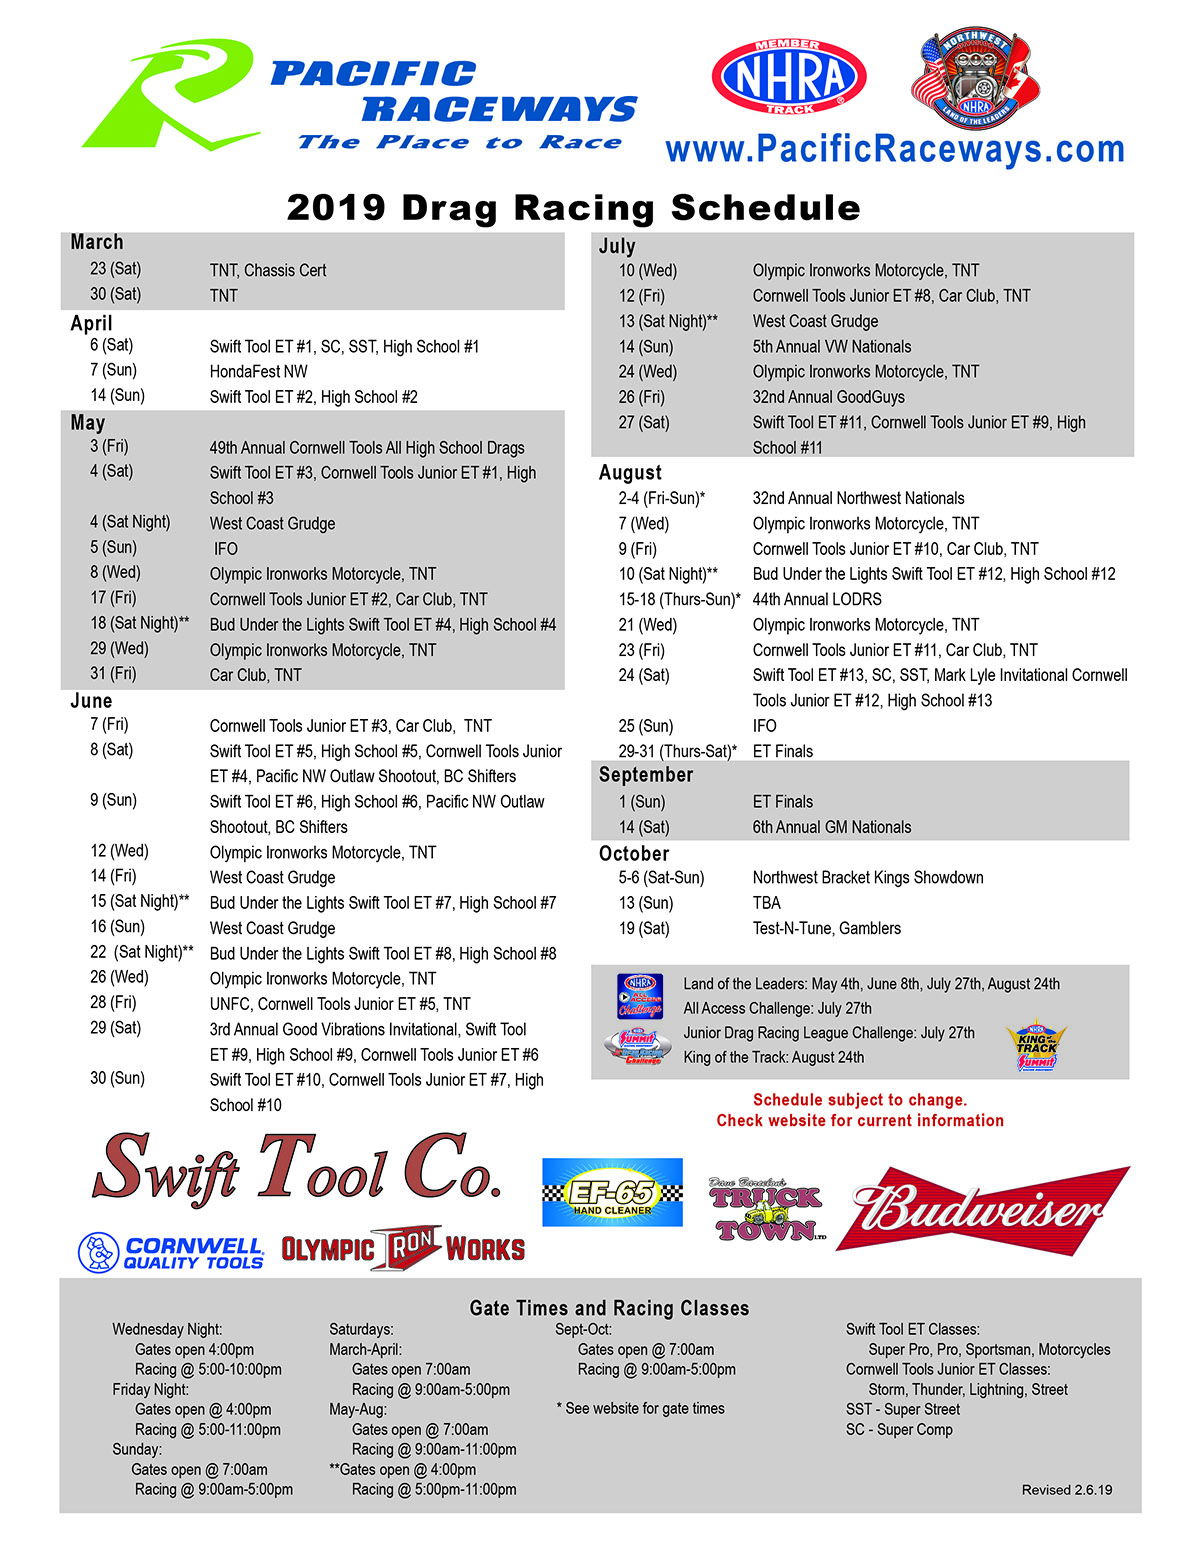 image about Printable Olympic Tv Schedule known as Drag Race Agenda - Pacific Raceways : Pacific Raceways